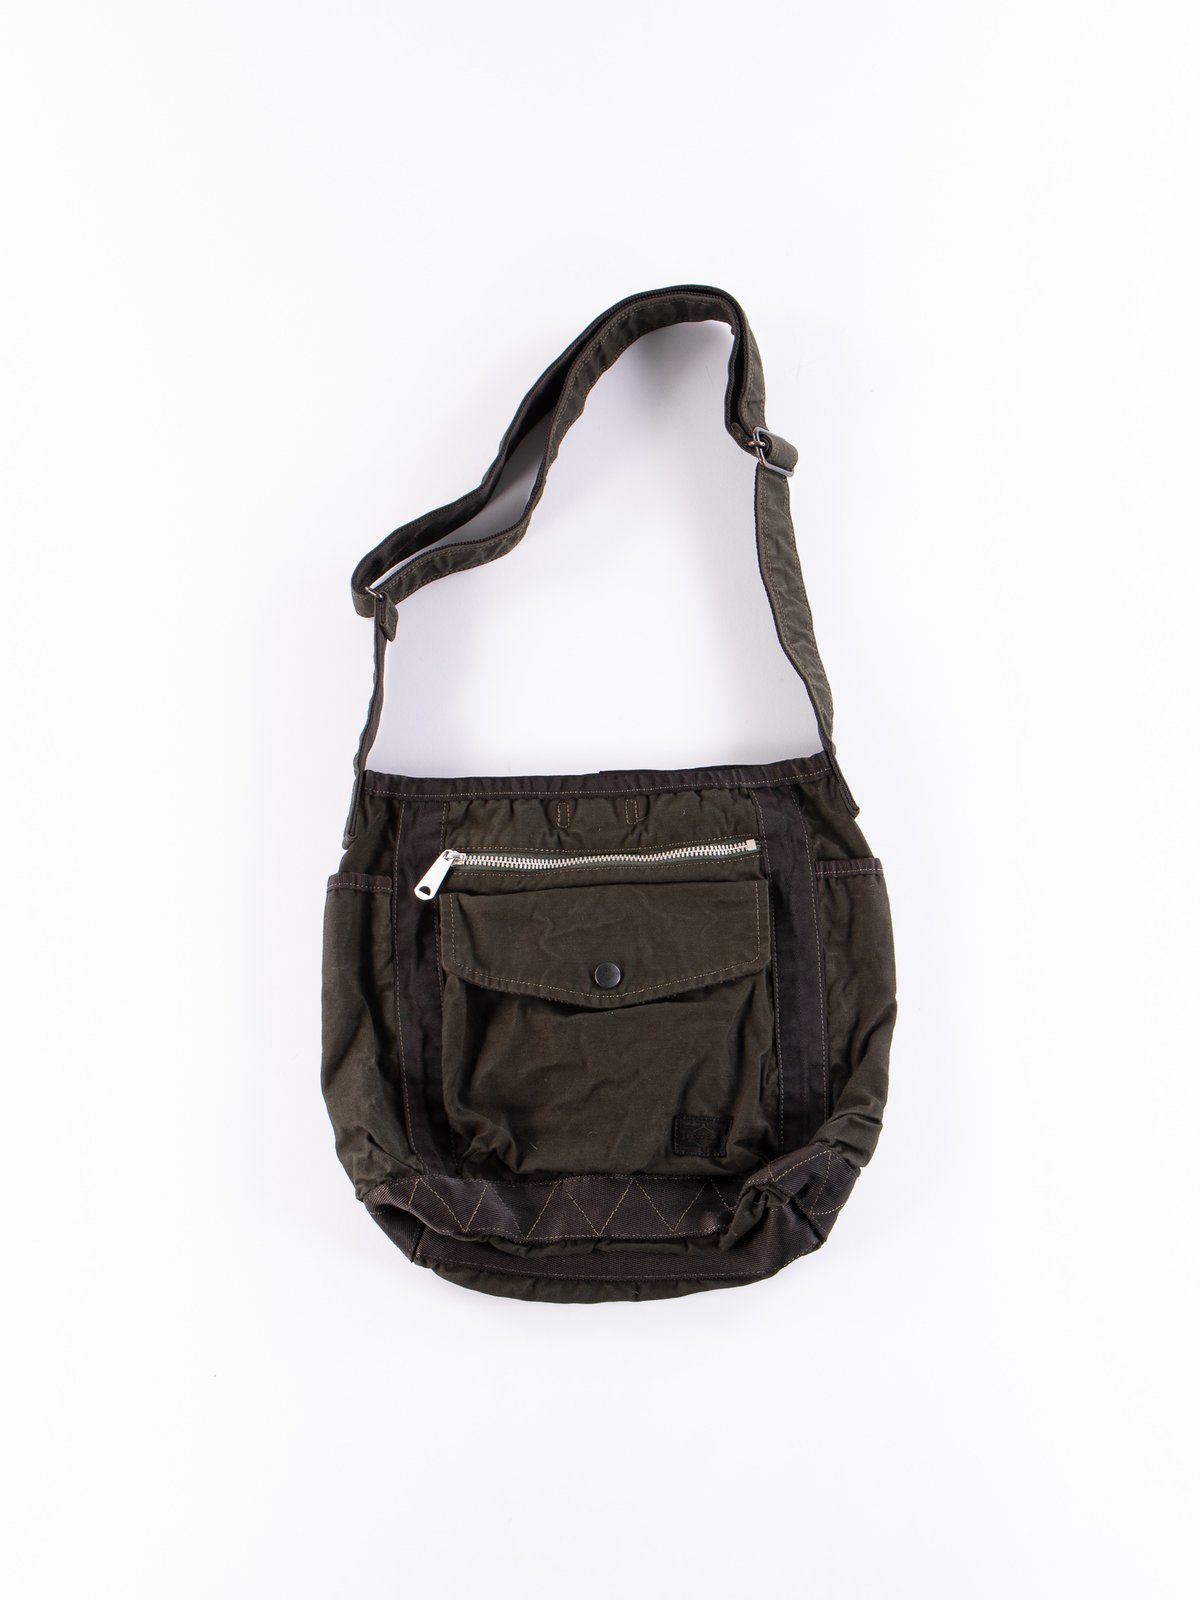 Khaki Crag Shoulder Bag Small - Image 1